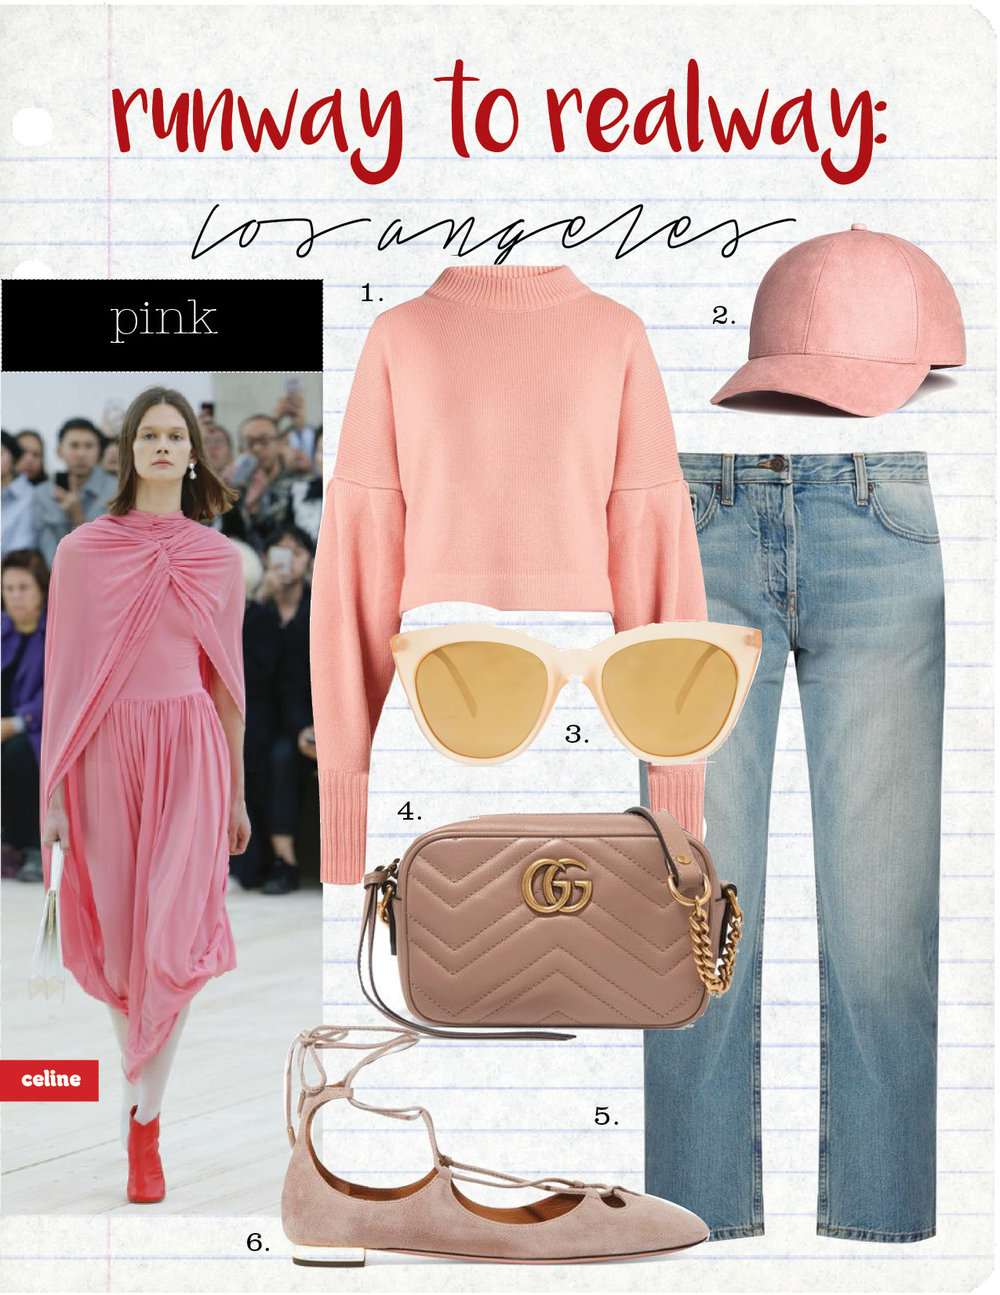 1. TIBI BISHOP-SLEEVED CROPPED CASHMERE SWEATER, $756,  MATCHESFASHION.COM  2. H&M LIGHT PINK CAP, $12,  HM.COM  3. LE SPECS HALFMOON CAT-EYE SUNGLASSES, $56,  MATCHESFASHION.COM  4. GUCCI GG MARMONT CAMERA MINI QUILTED LEATHER SHOULDER BAG, $980,  NET-A-PORTER.COM  5. THE ROW ASHLAND LOW-RISE STRAIGHT-LEG JEANS, $604,  MATCHESFASHION.COM  6. AQUAZZURA DANCER LACE-UP SUEDE BALLET FLATS, $725,  NET-A-PORTER.COM